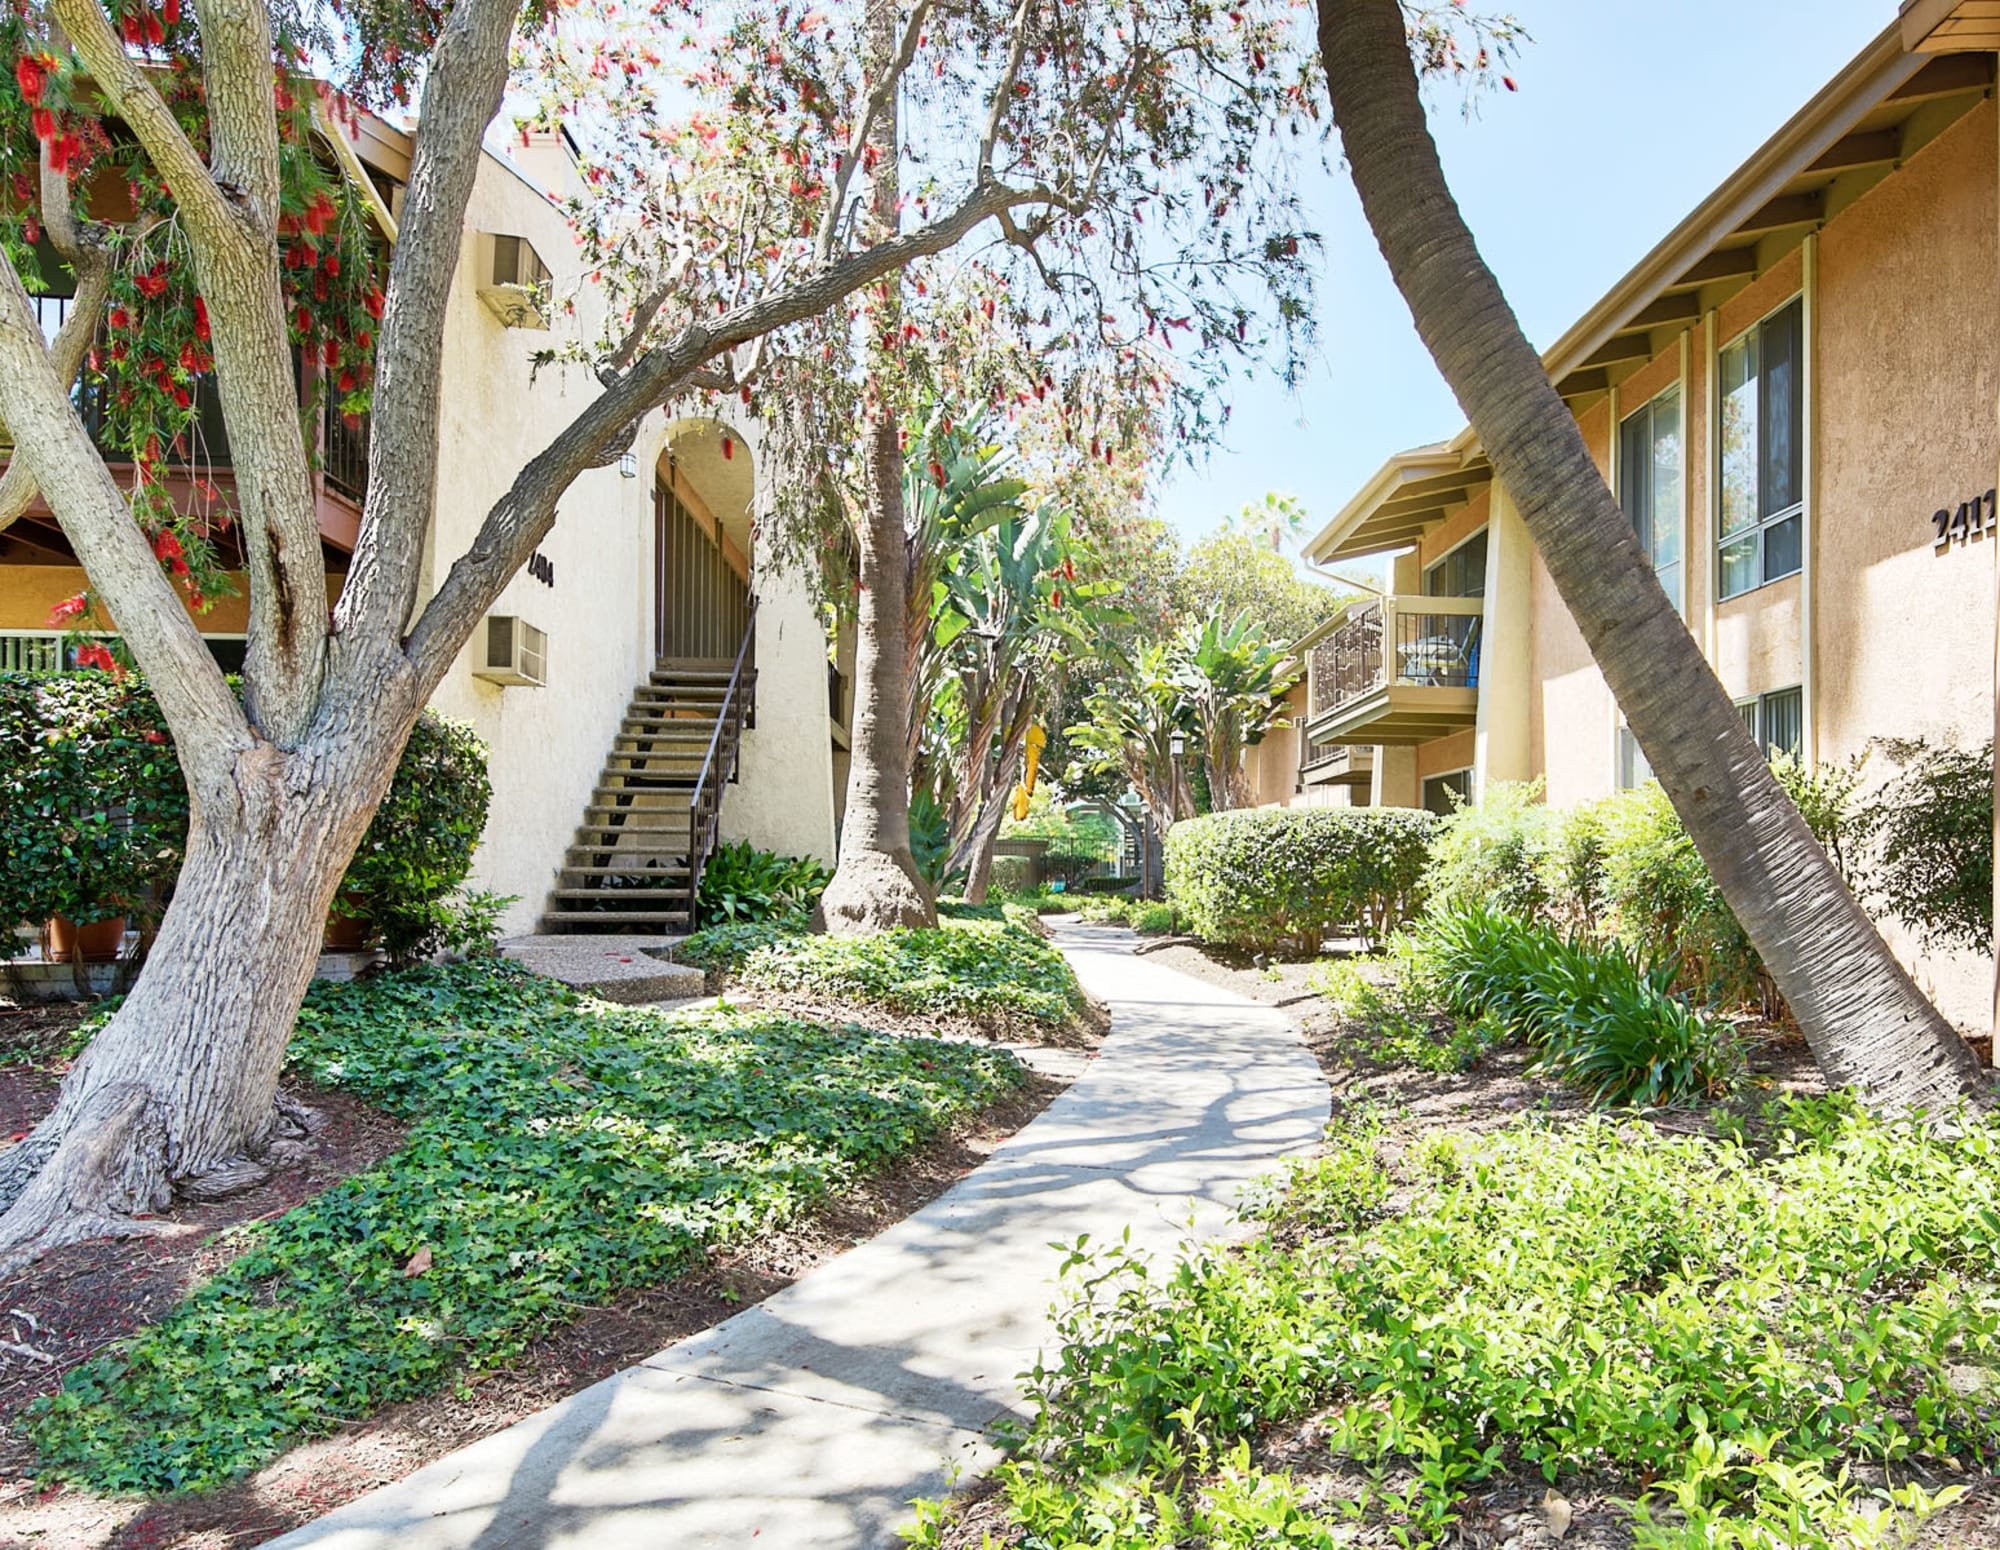 Lush and well-manicured landscaping along a community pathway at Mediterranean Village Apartments in Costa Mesa, California